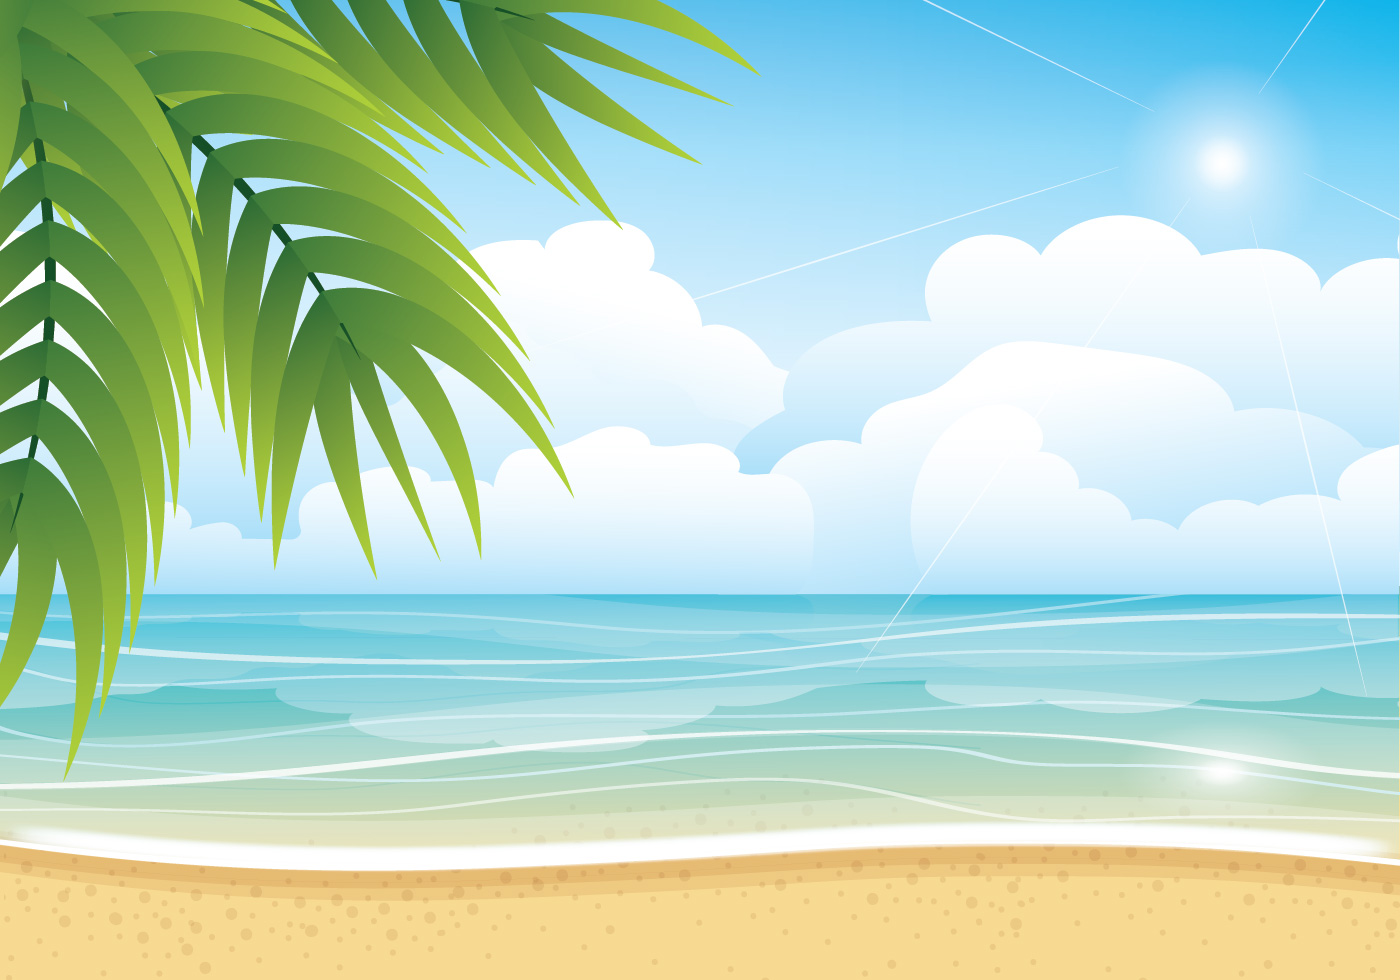 Beautiful beach backgrounds clipart design graphic royalty free library Summer Free Vector Art - (58,863 Free Downloads) graphic royalty free library